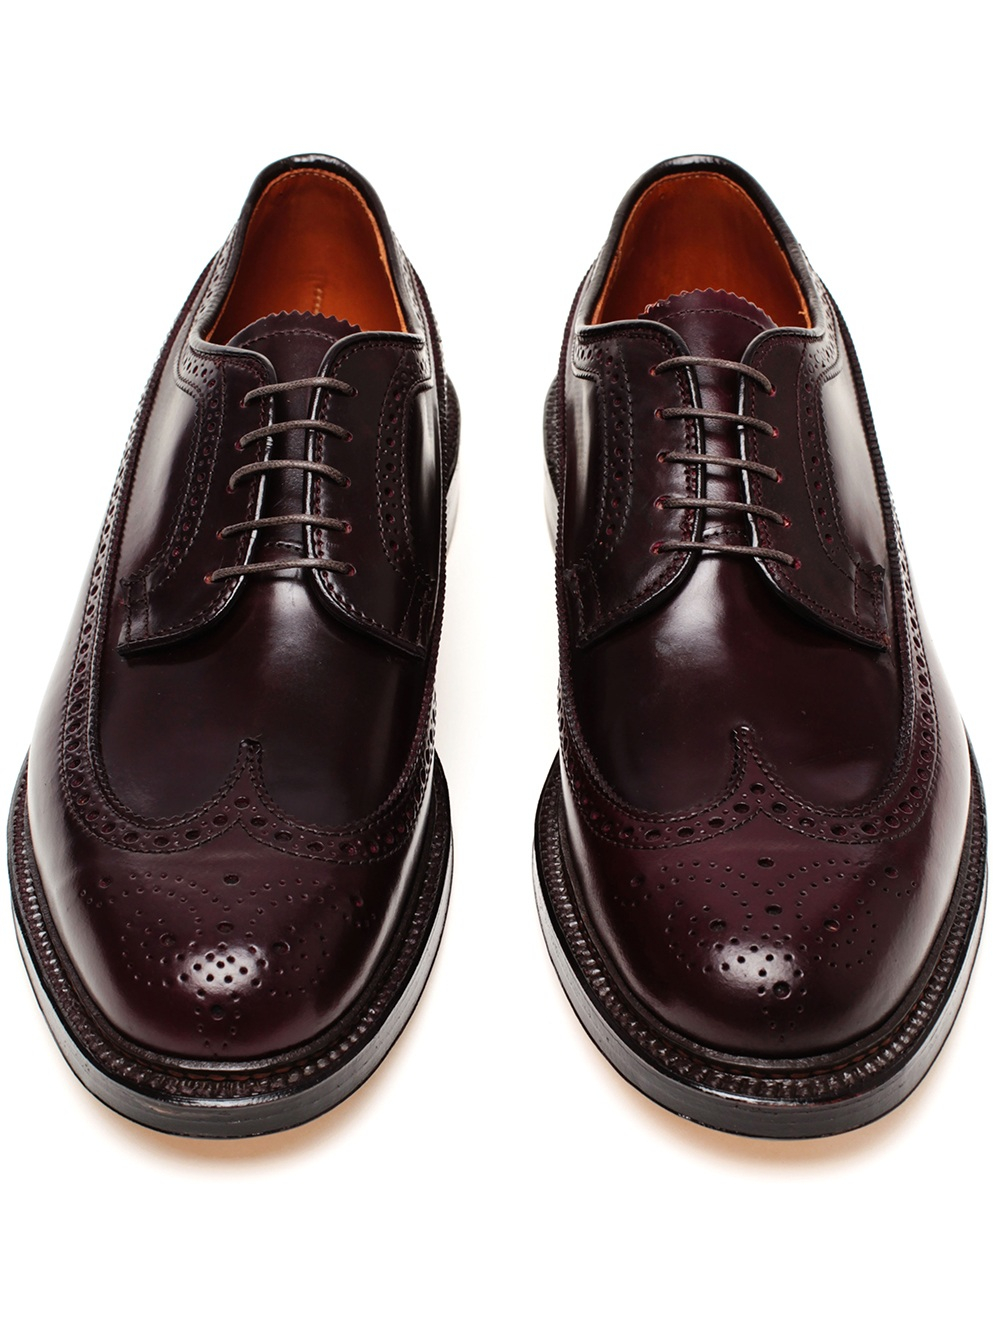 Lyst Alden Cordovan Leather Brogues In Brown For Men